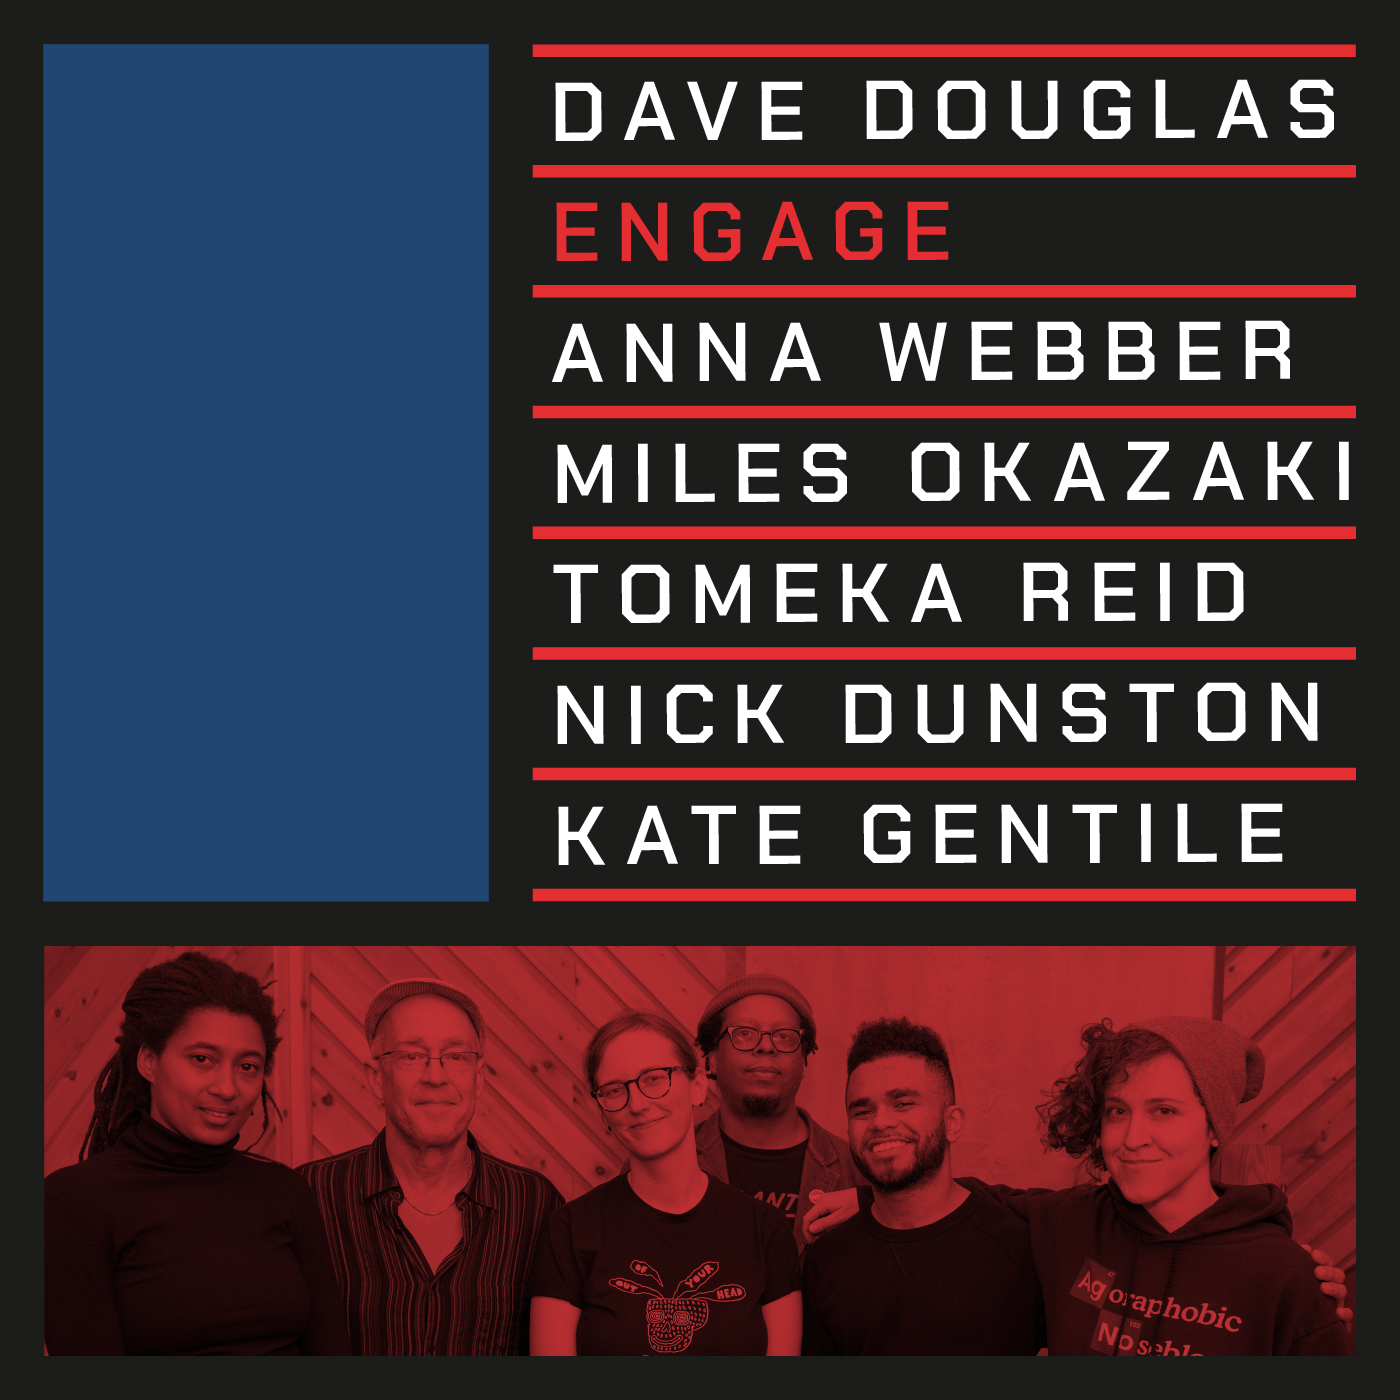 Engage-Dave-Douglas-withMilesO.png